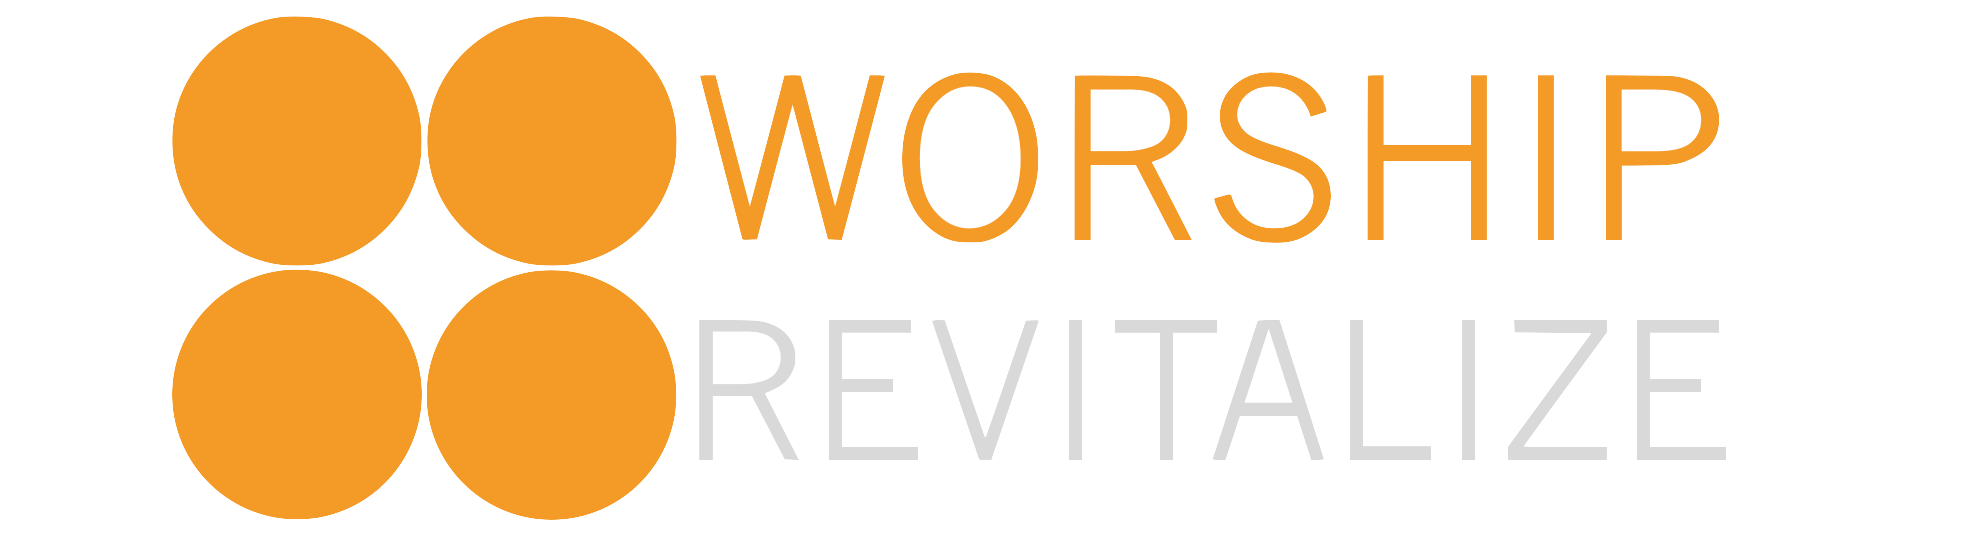 WORSHIP REVITALIZE